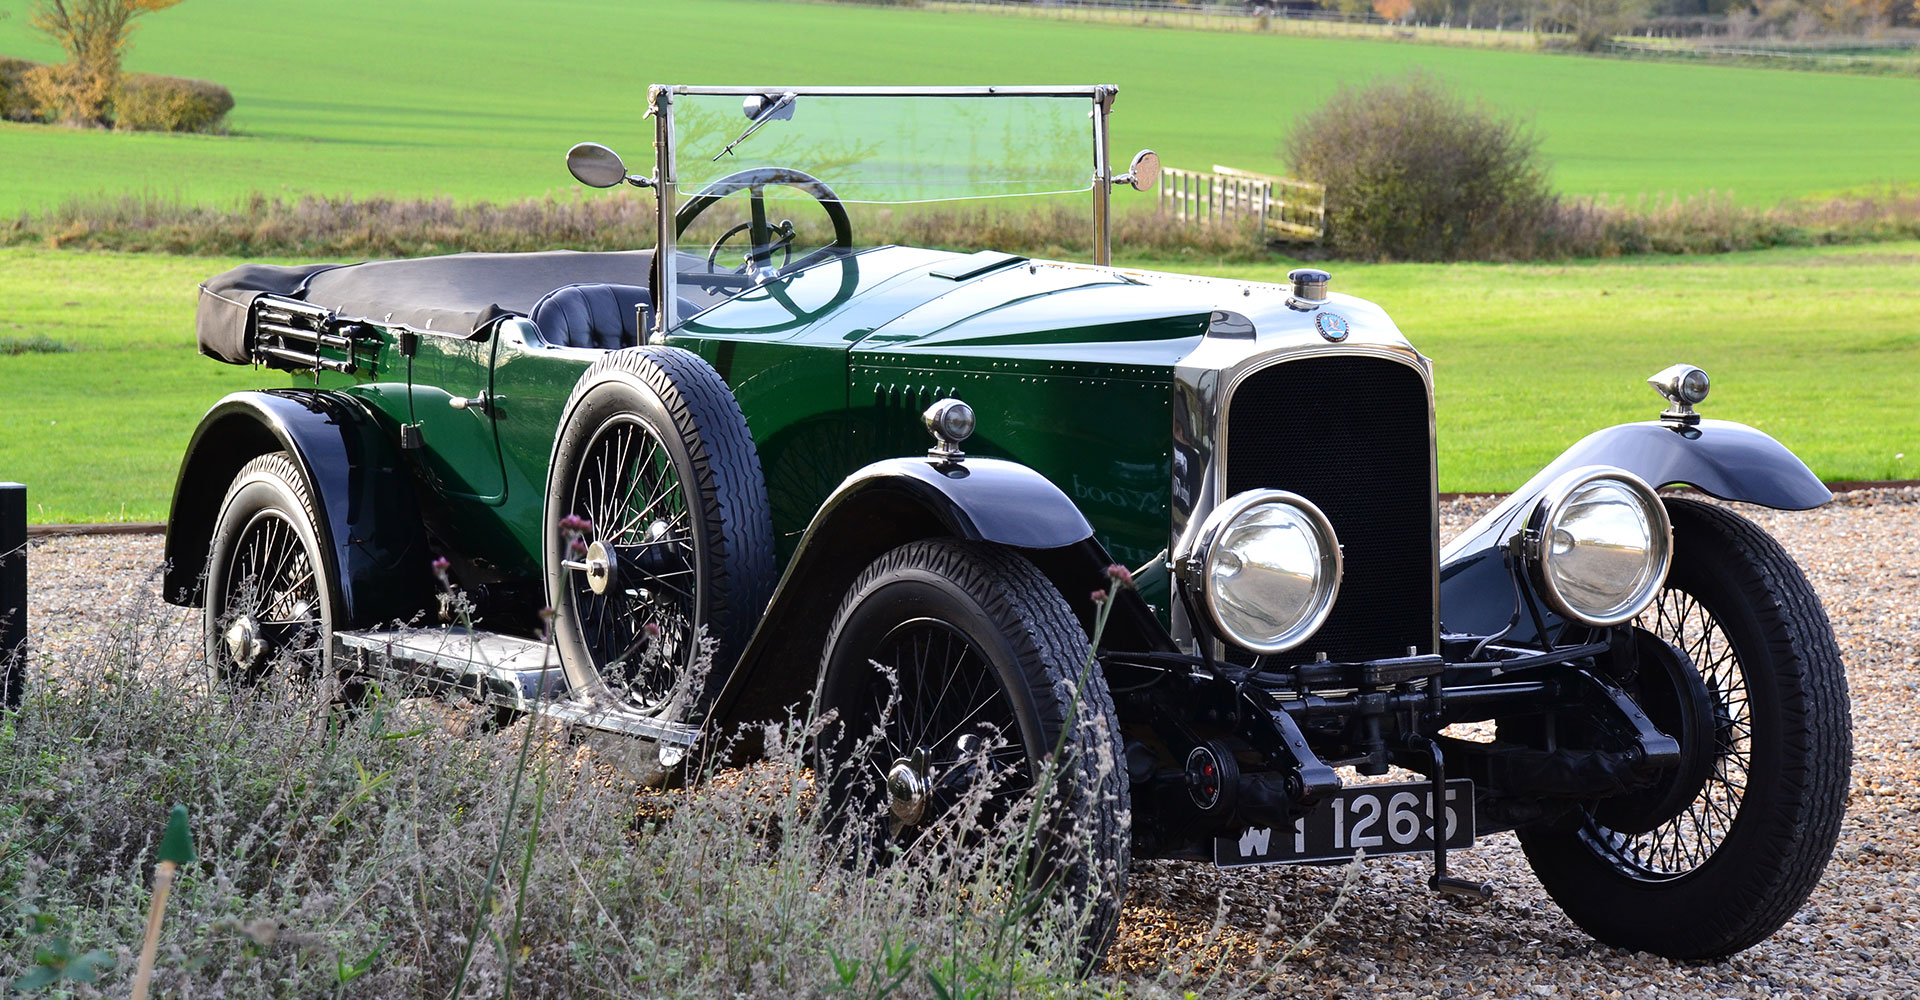 Vintage and veteran cars for restoration and sale